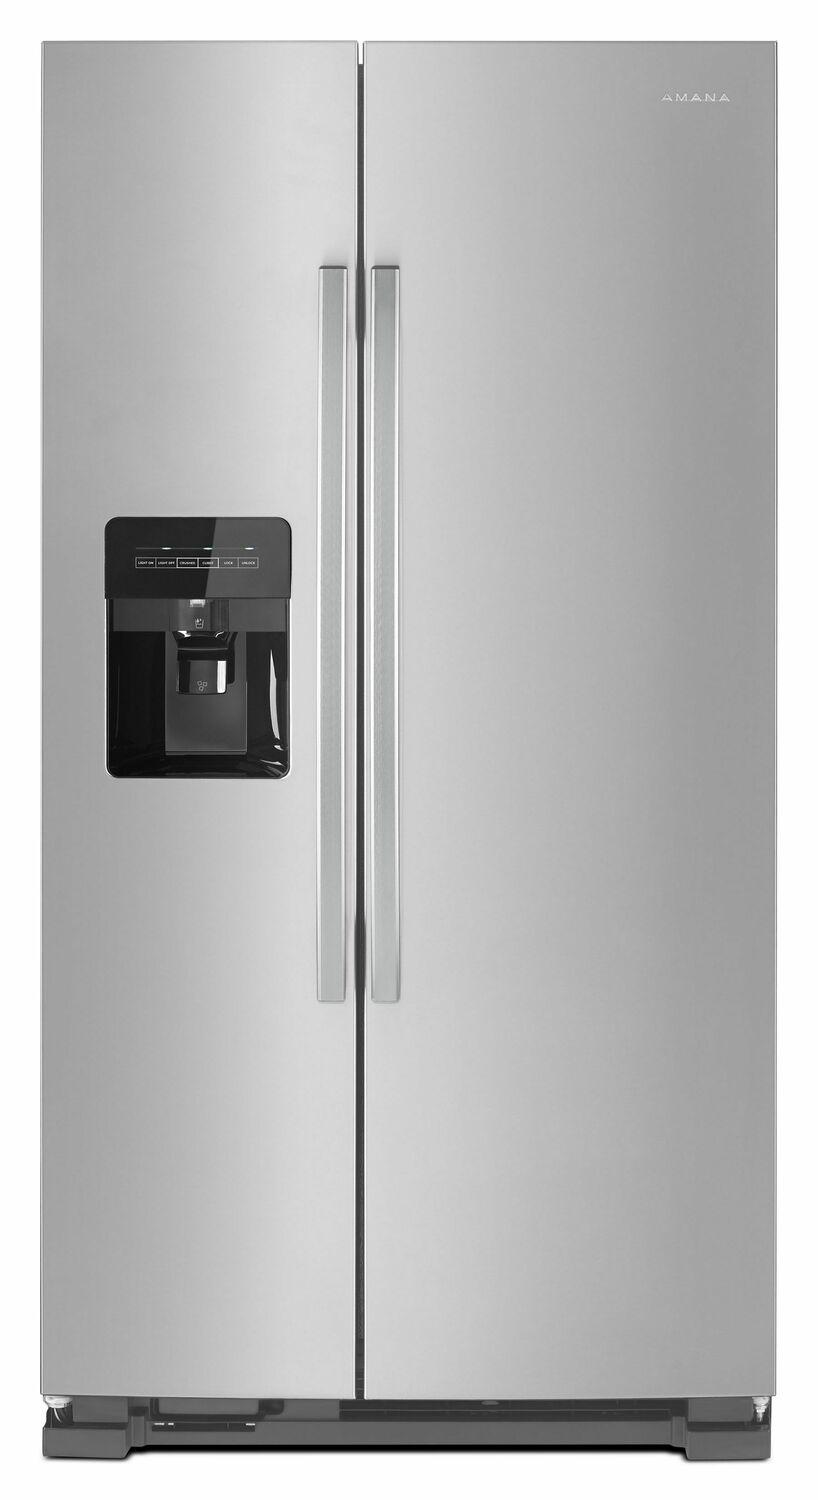 Amana36-Inch Side-By-Side Refrigerator With Dual Pad External Ice And Water Dispenser - Black-On-Stainless